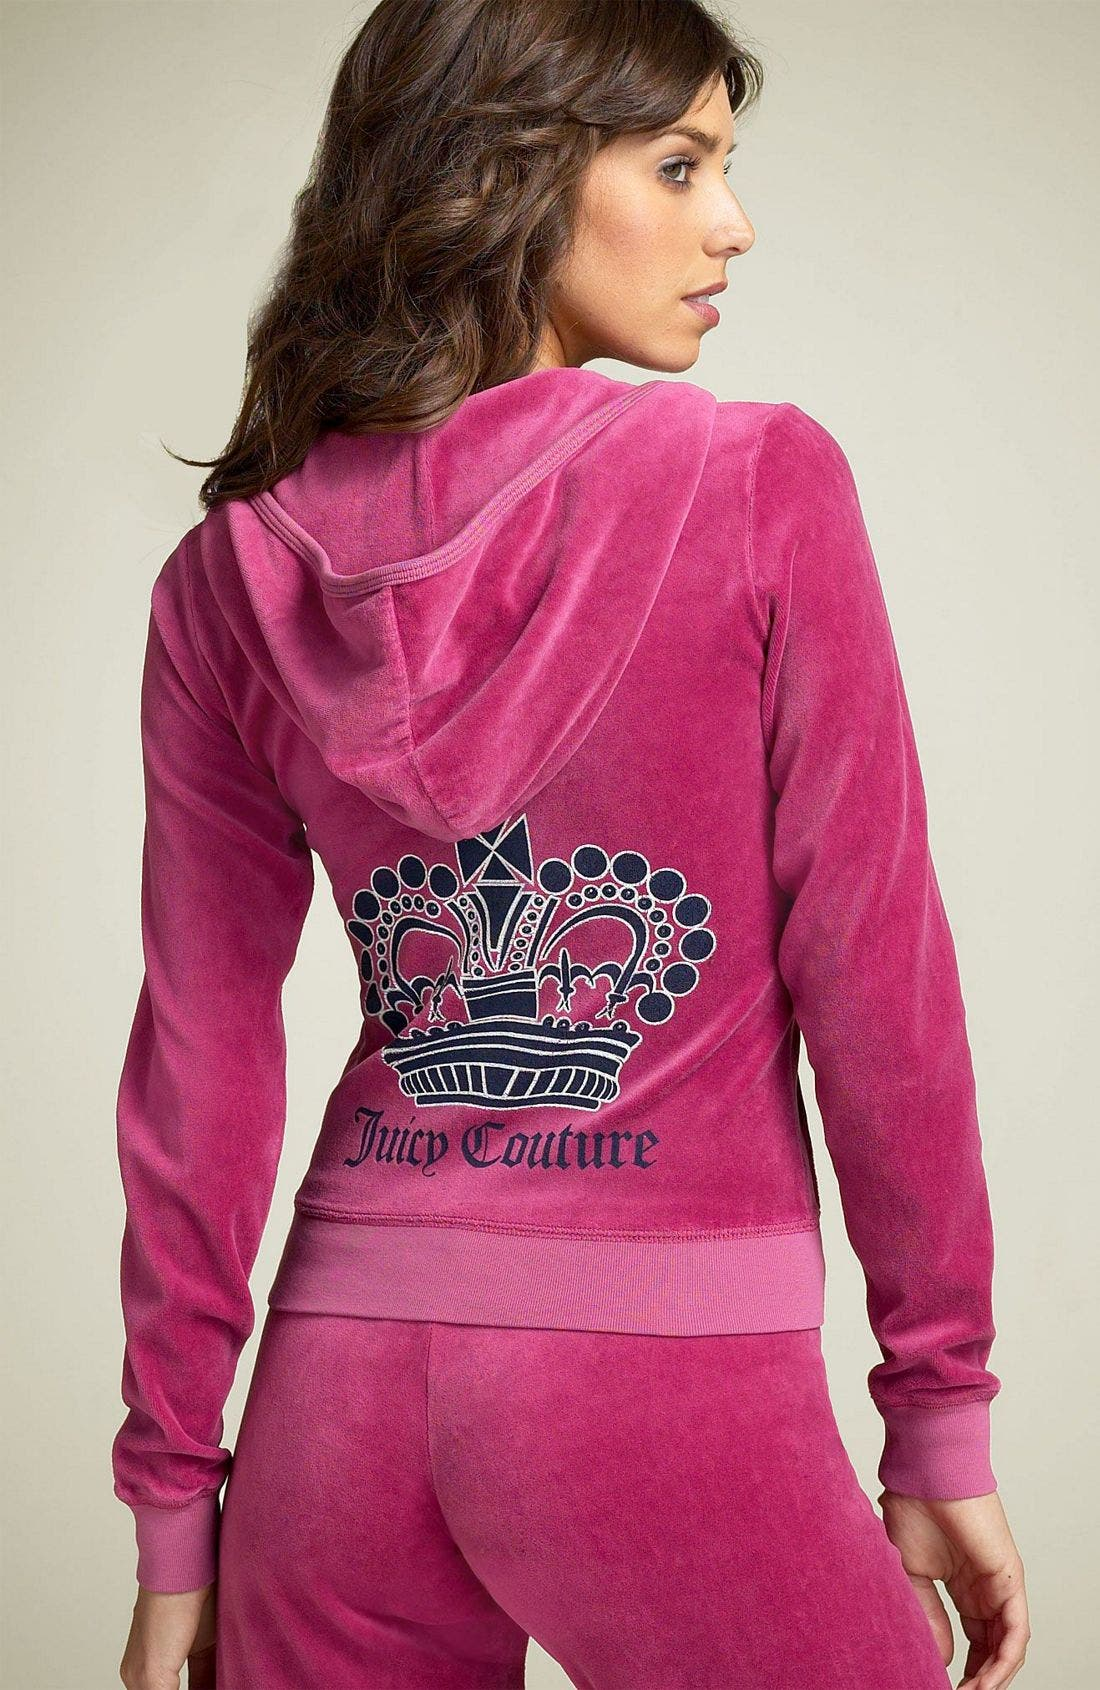 Alternate Image 1 Selected - Juicy Couture Crown Logo Velour Hoody (Nordstrom Exclusive)